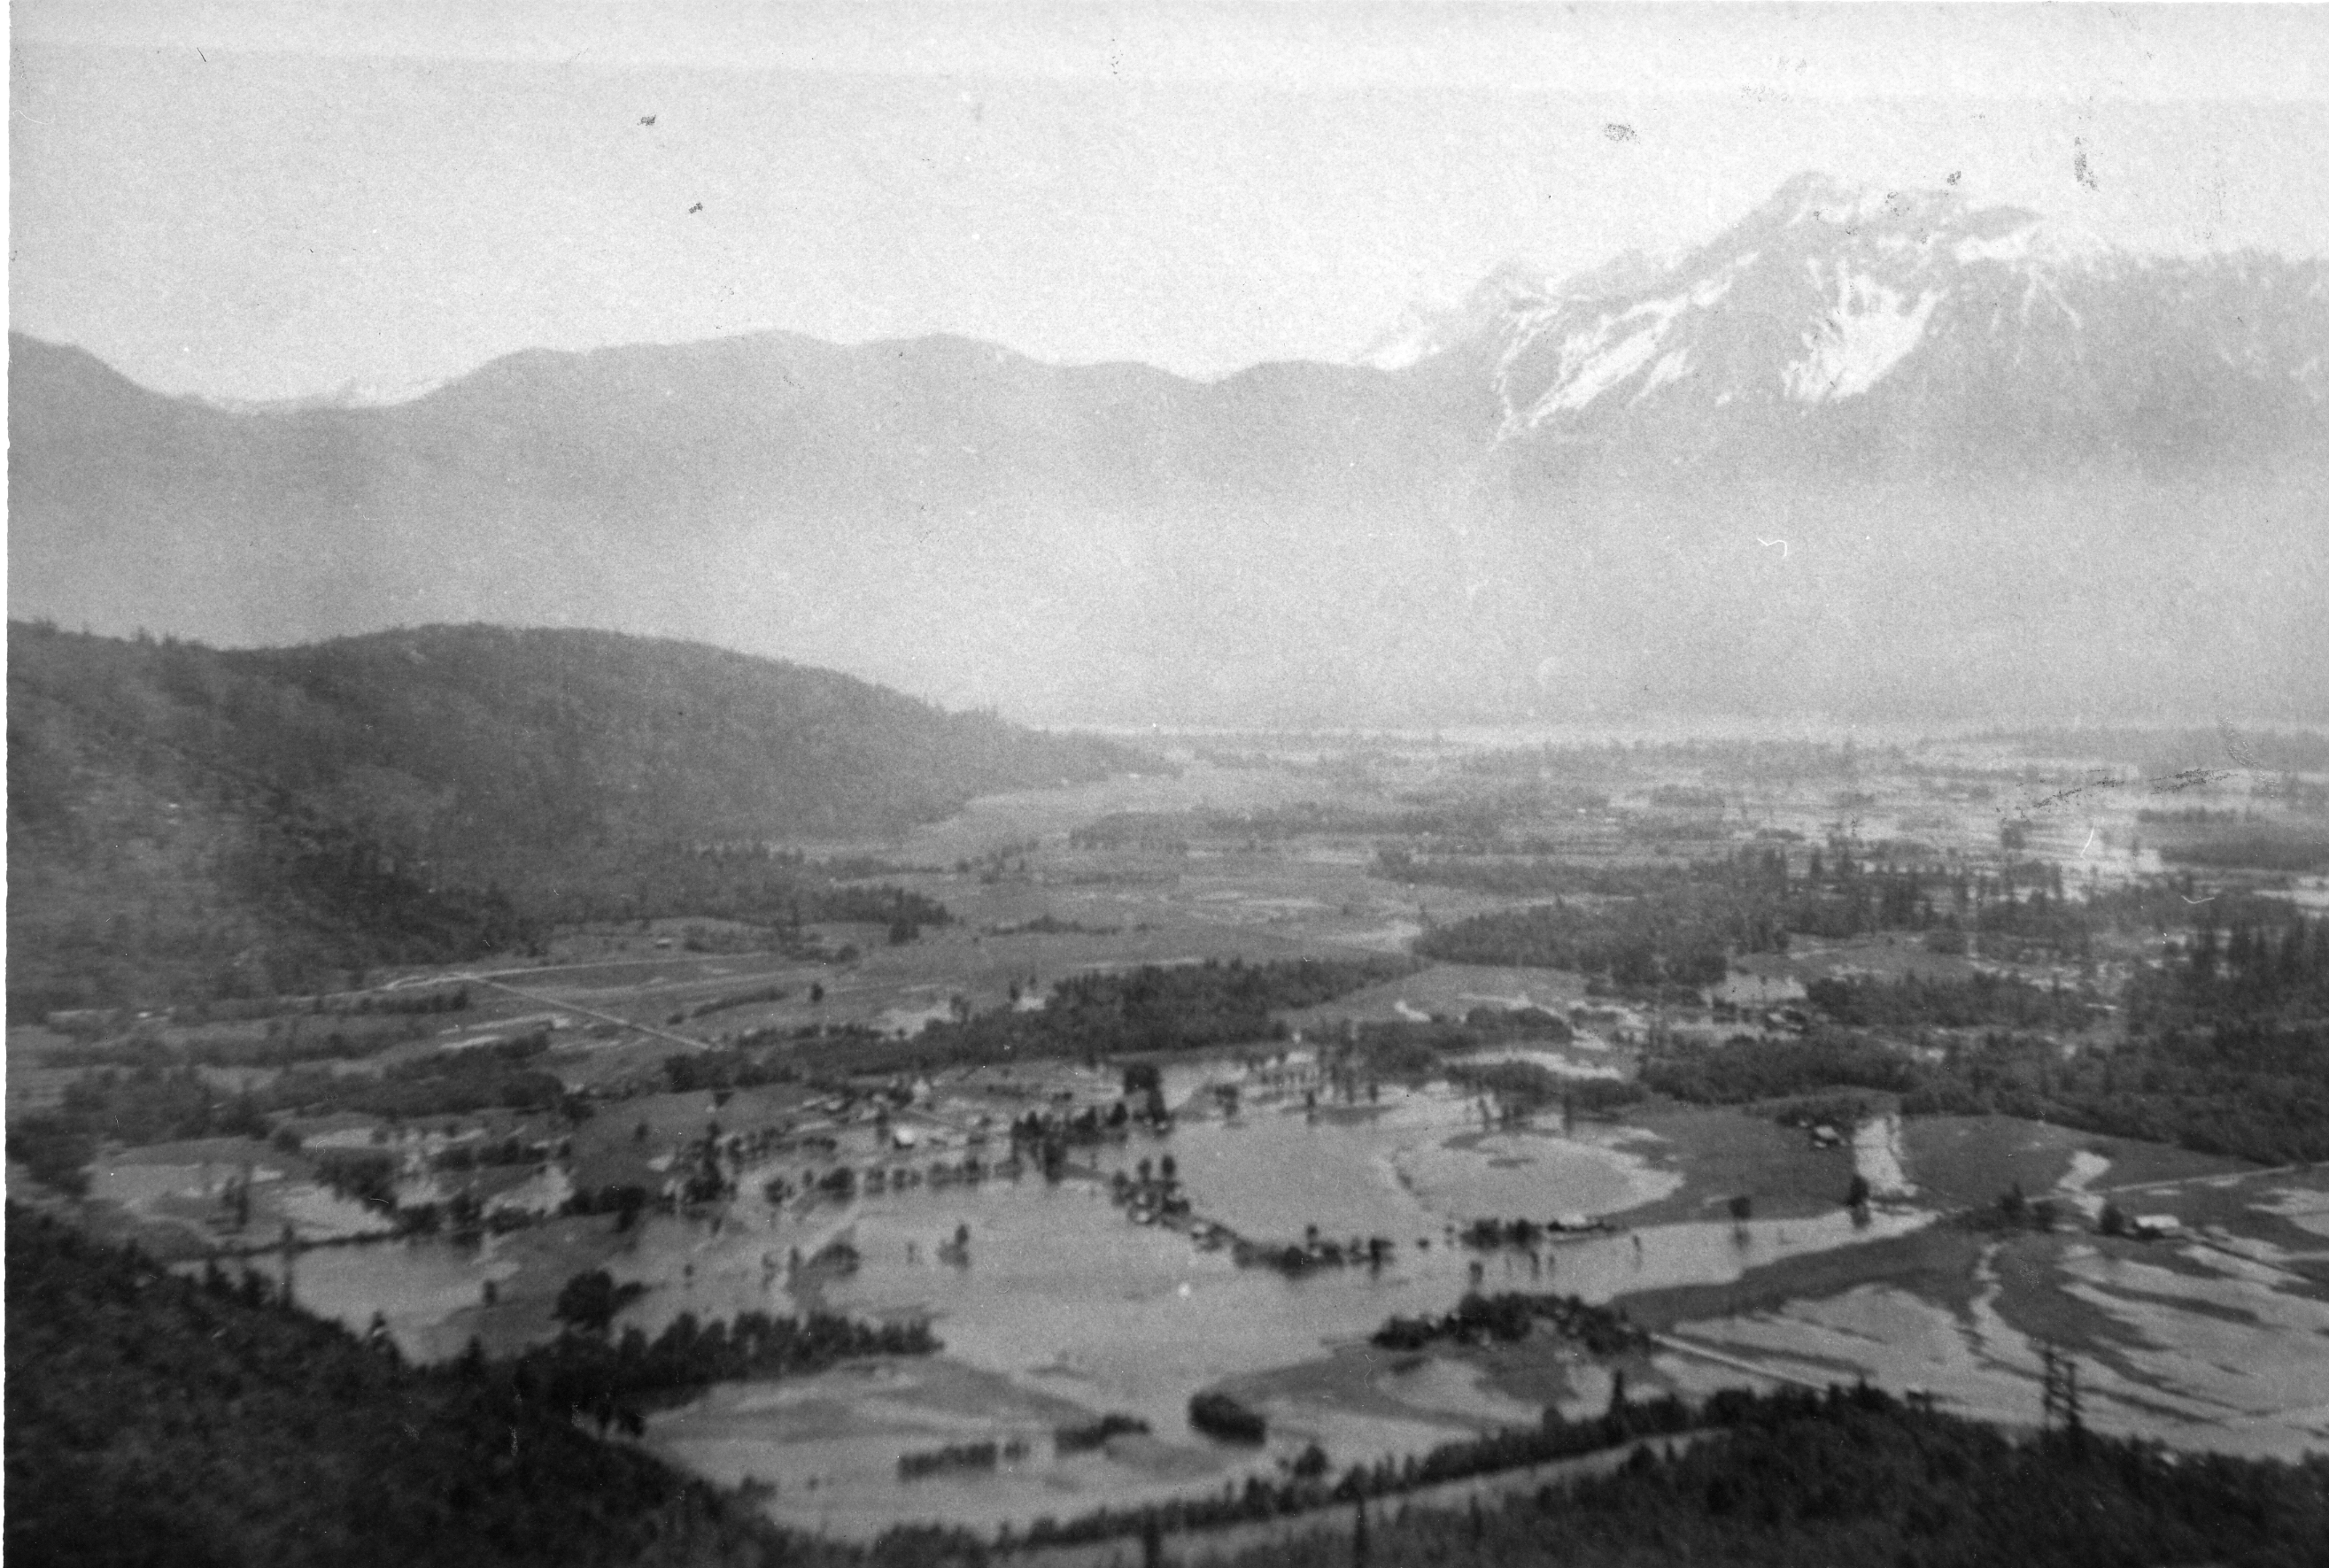 Black and white photograph of flooded fields with mountains in the background.